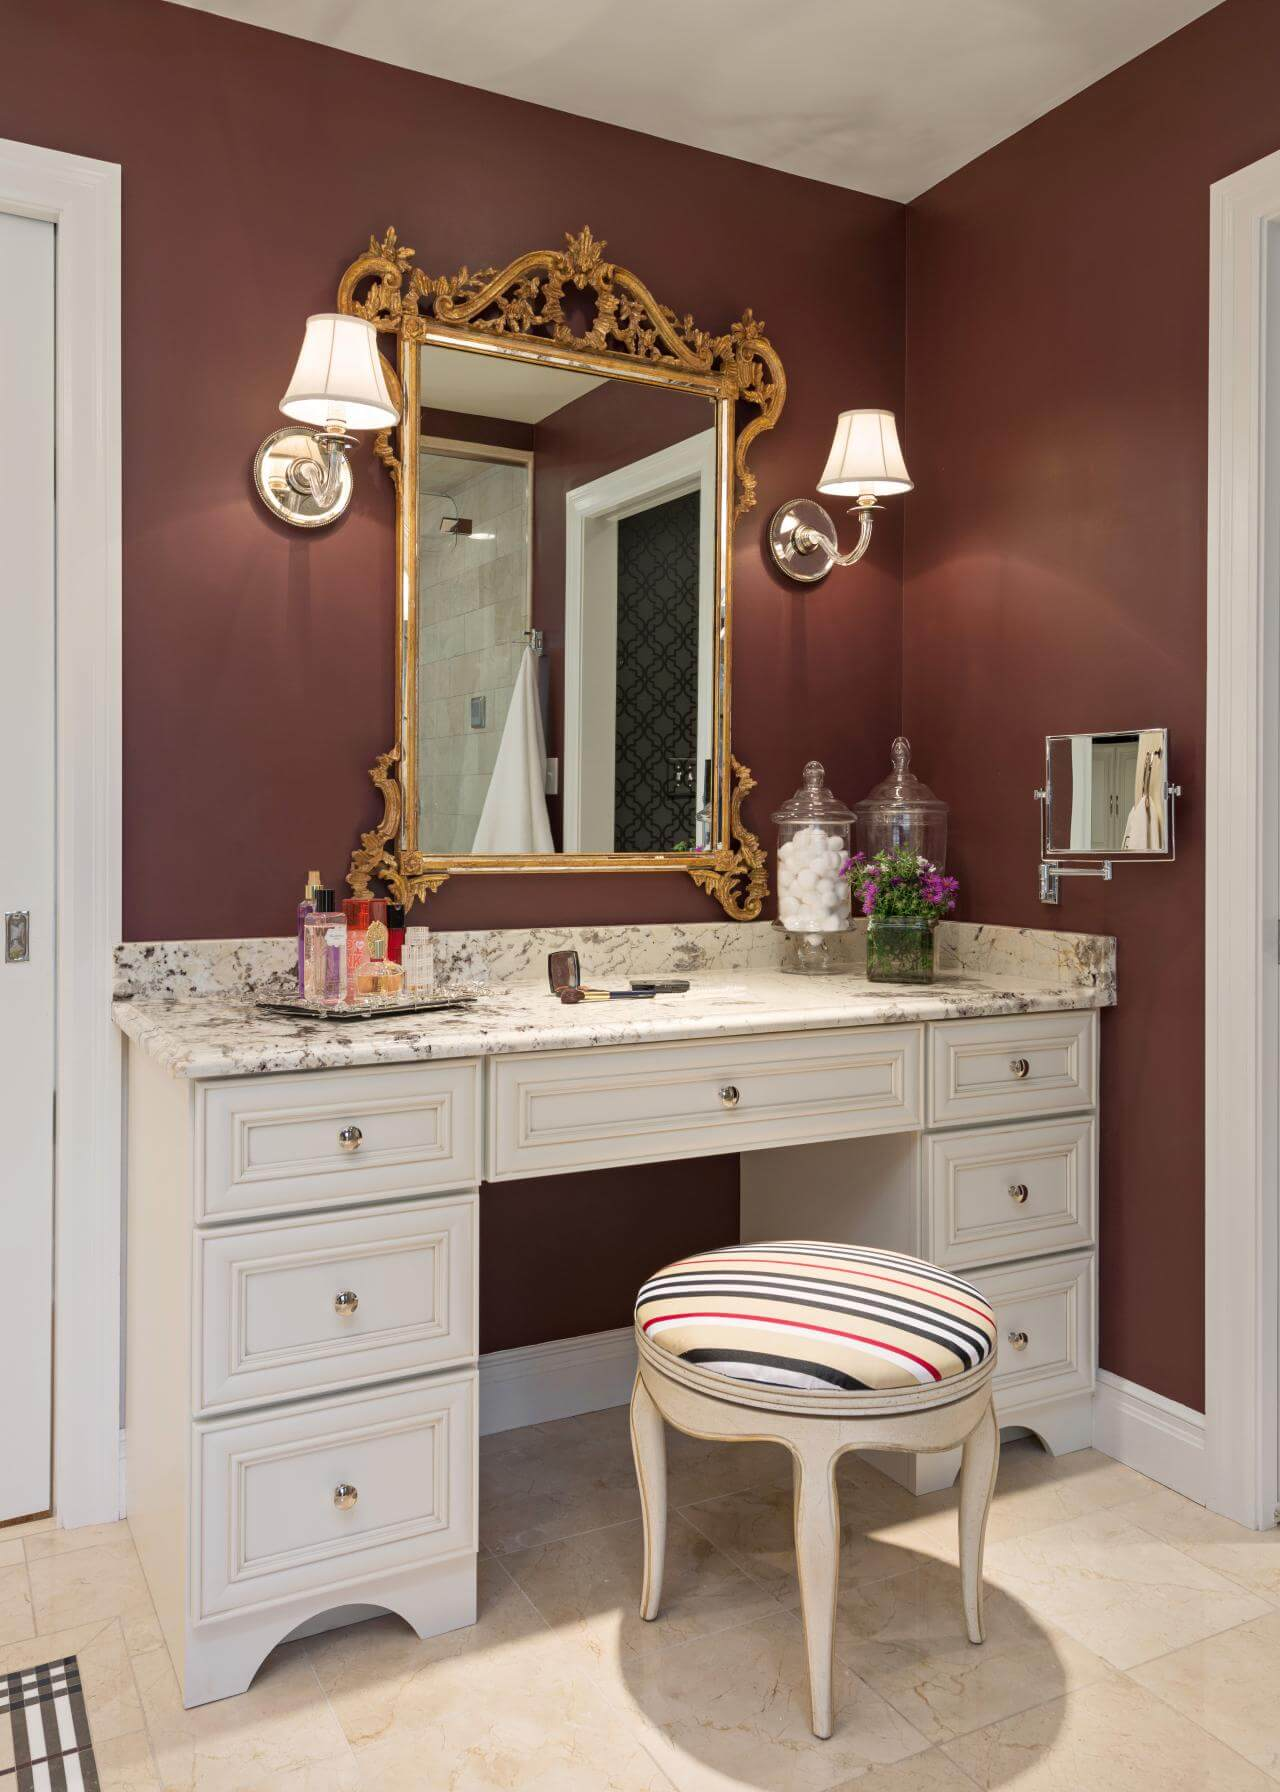 15 stunning makeup vanity decor ideas style motivation - What is vanity in design this home ...